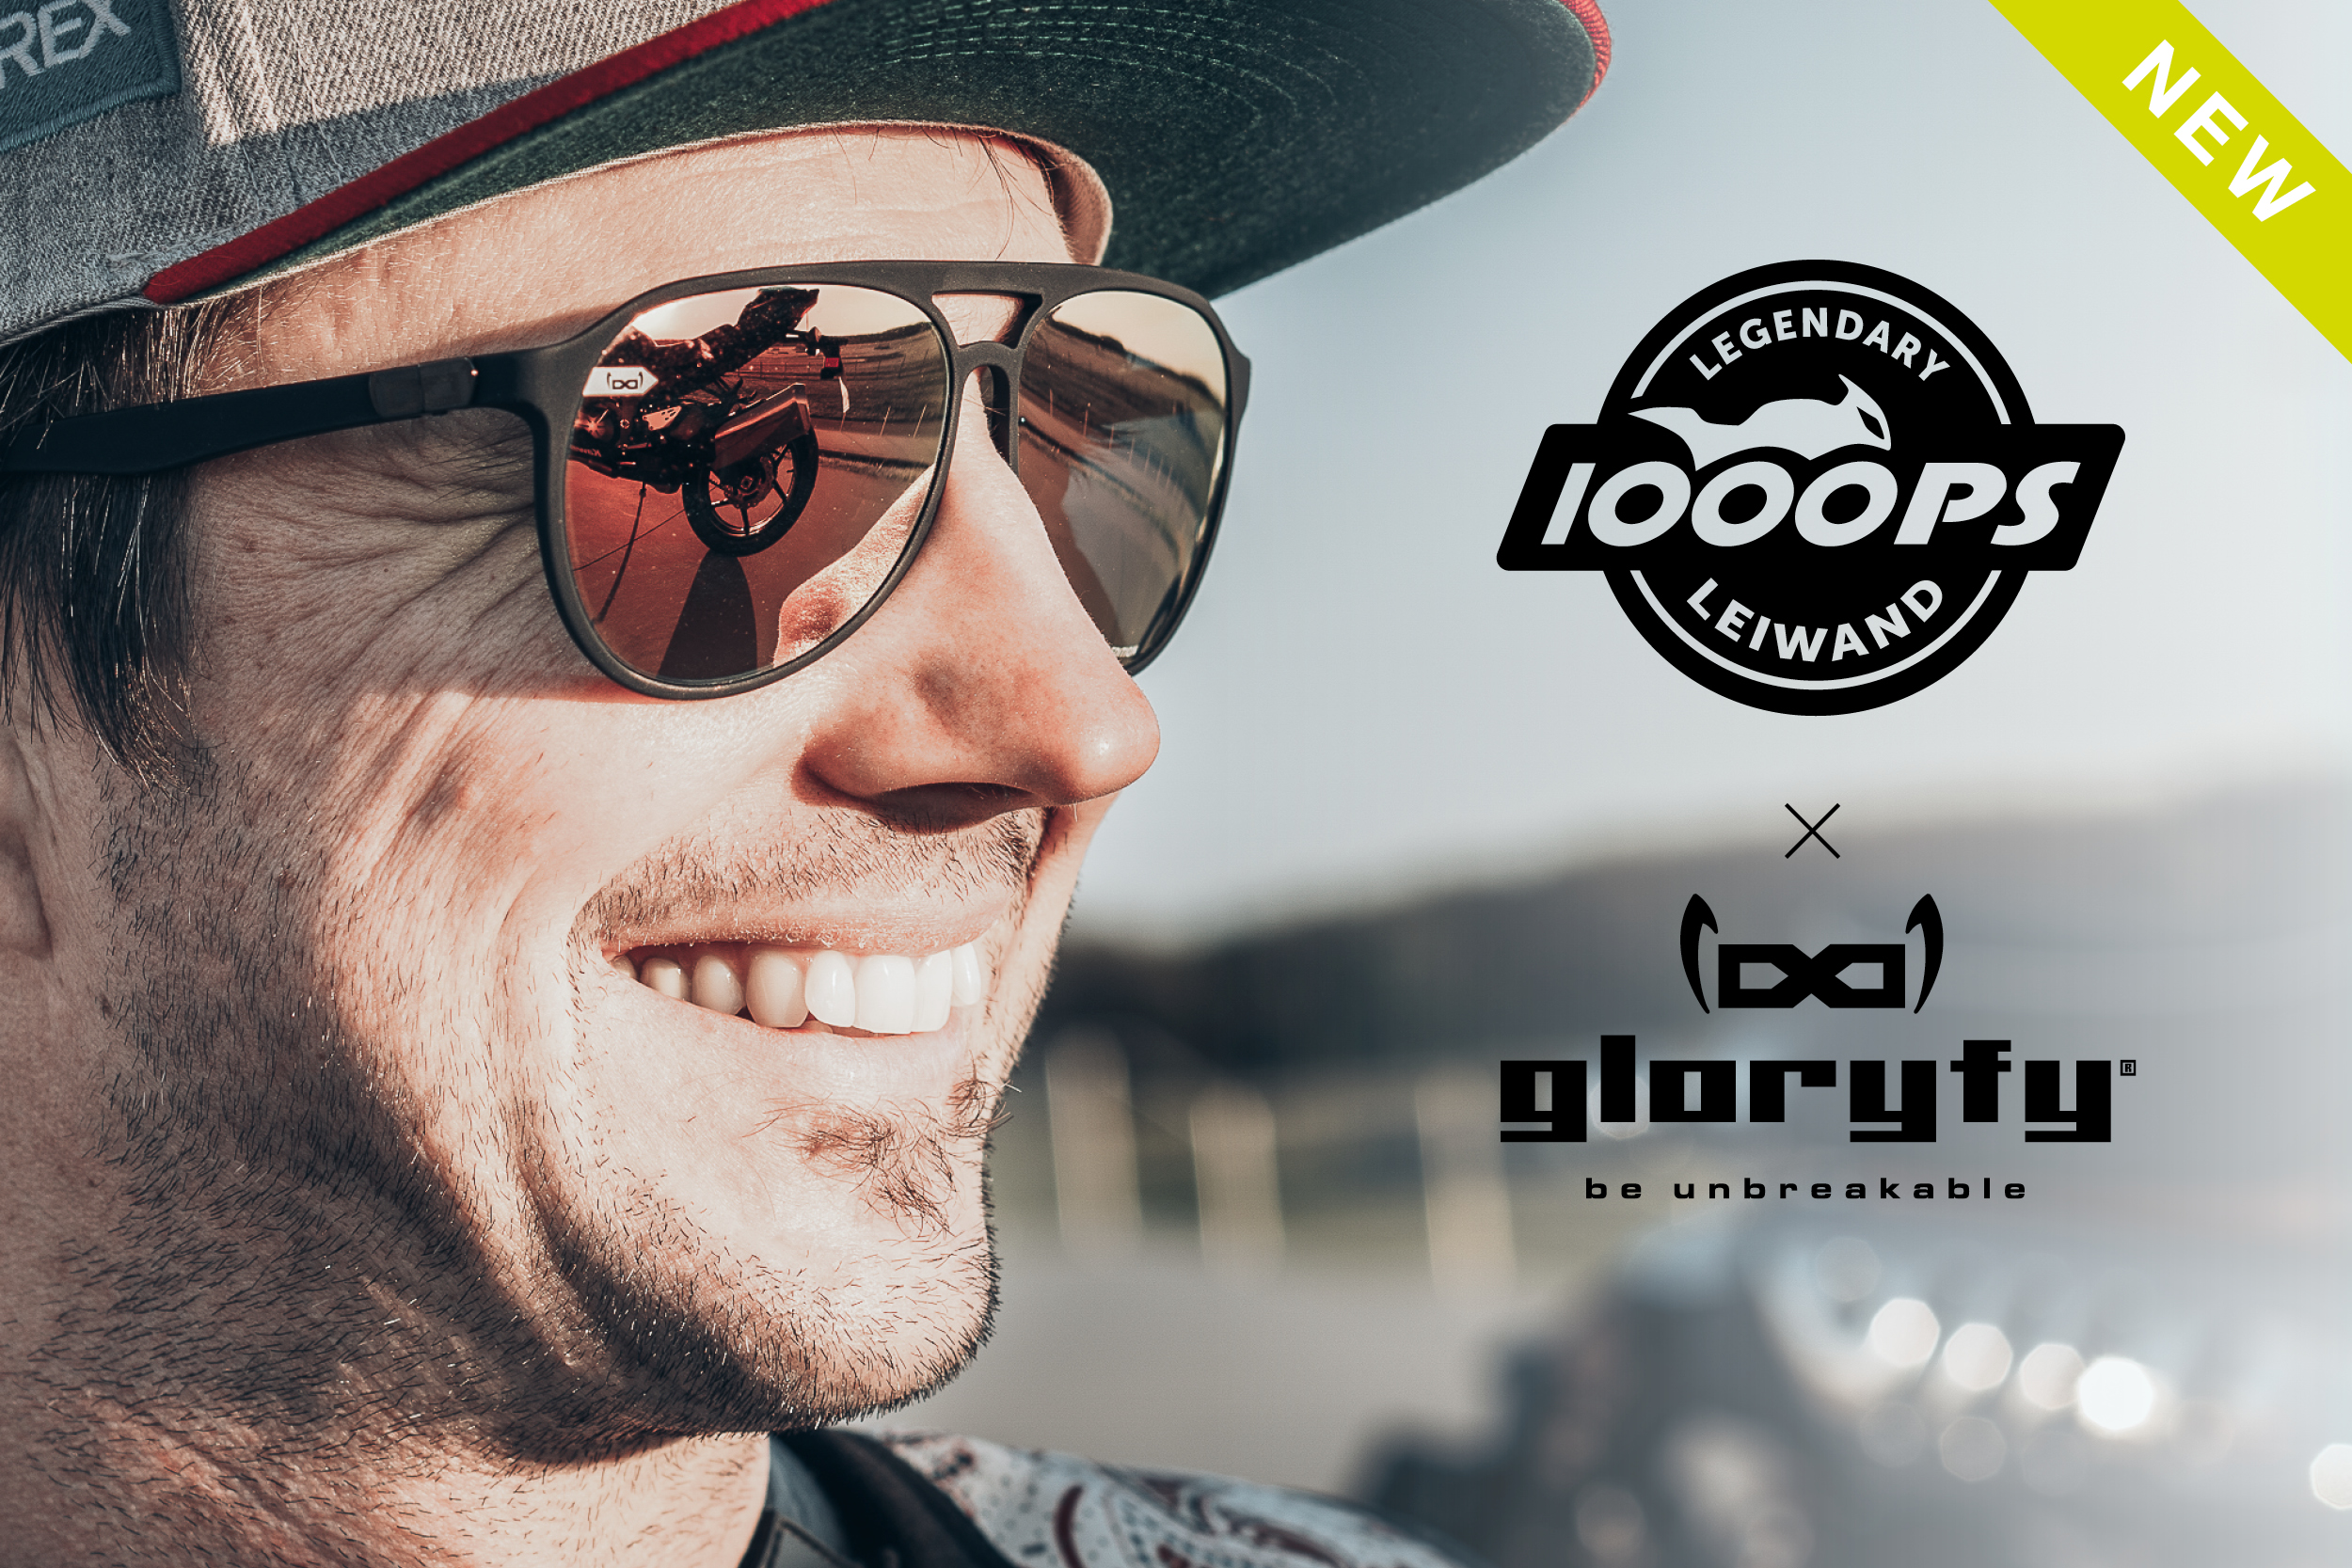 gloryfy-unbreakable-Sonnenbrille-1000ps-Editon